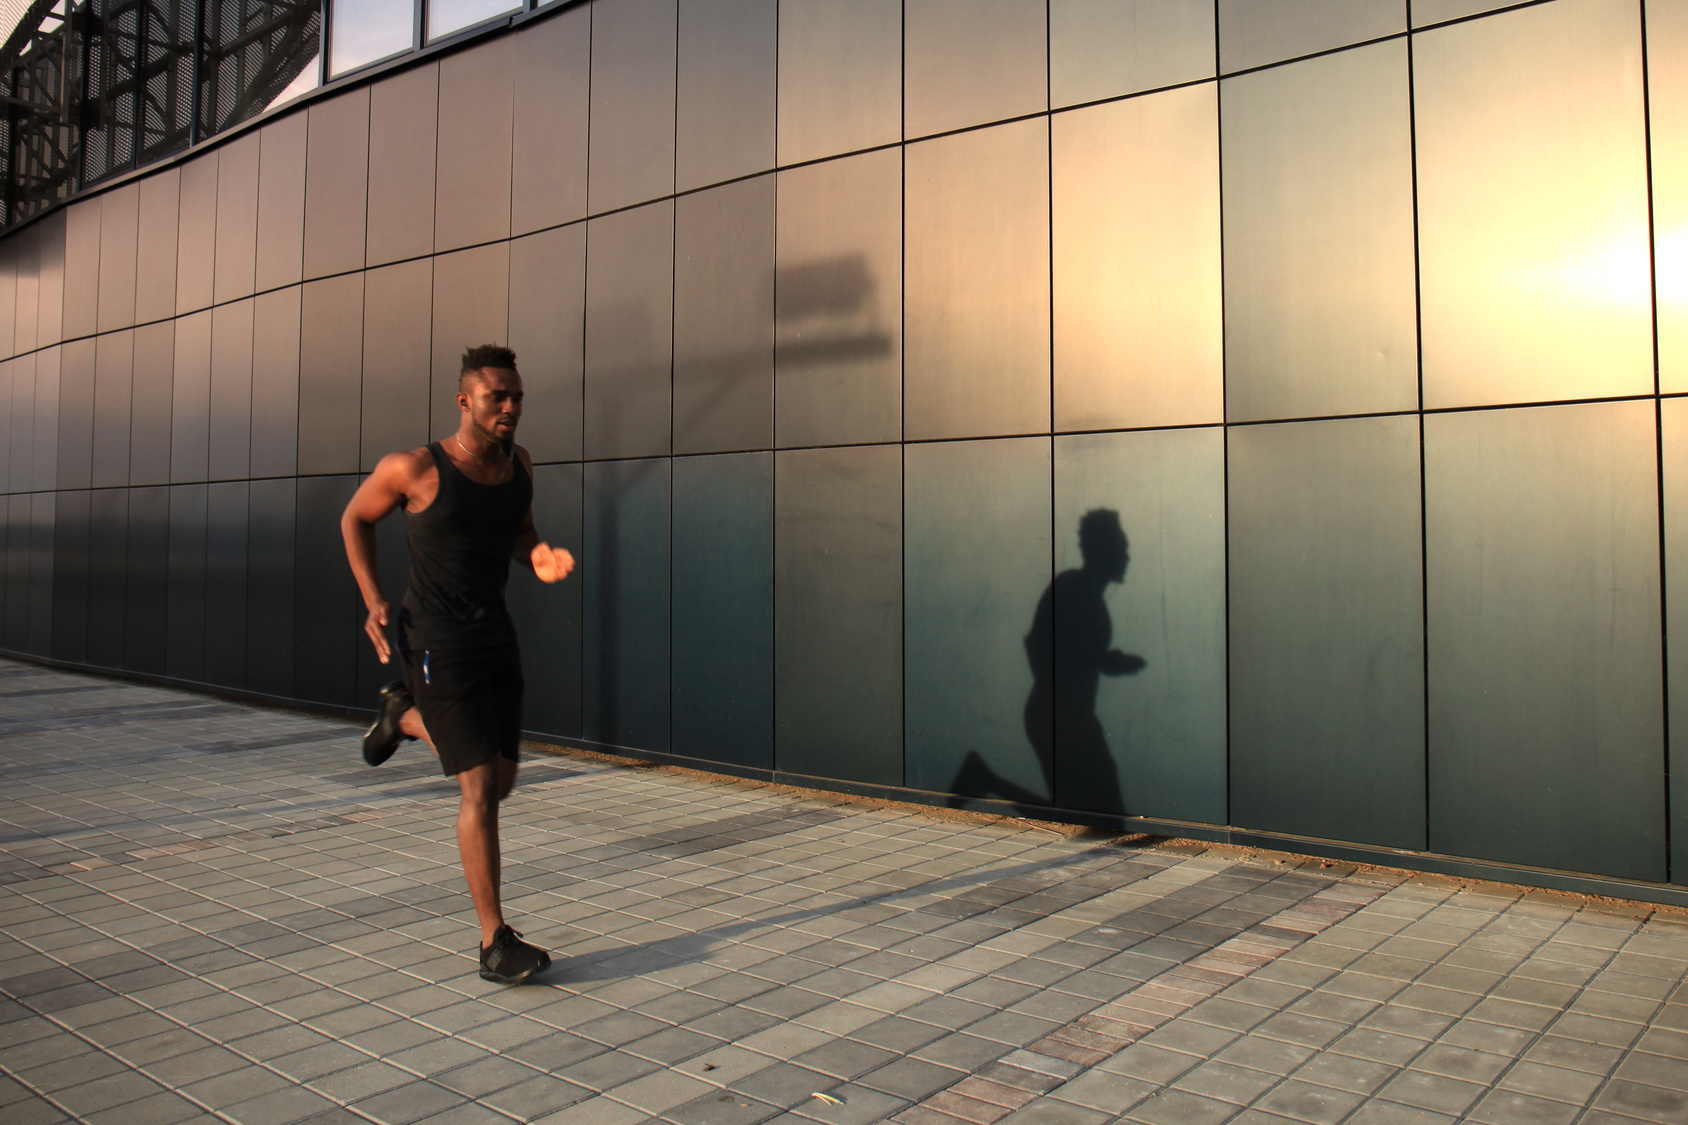 runner trying to improve his performance